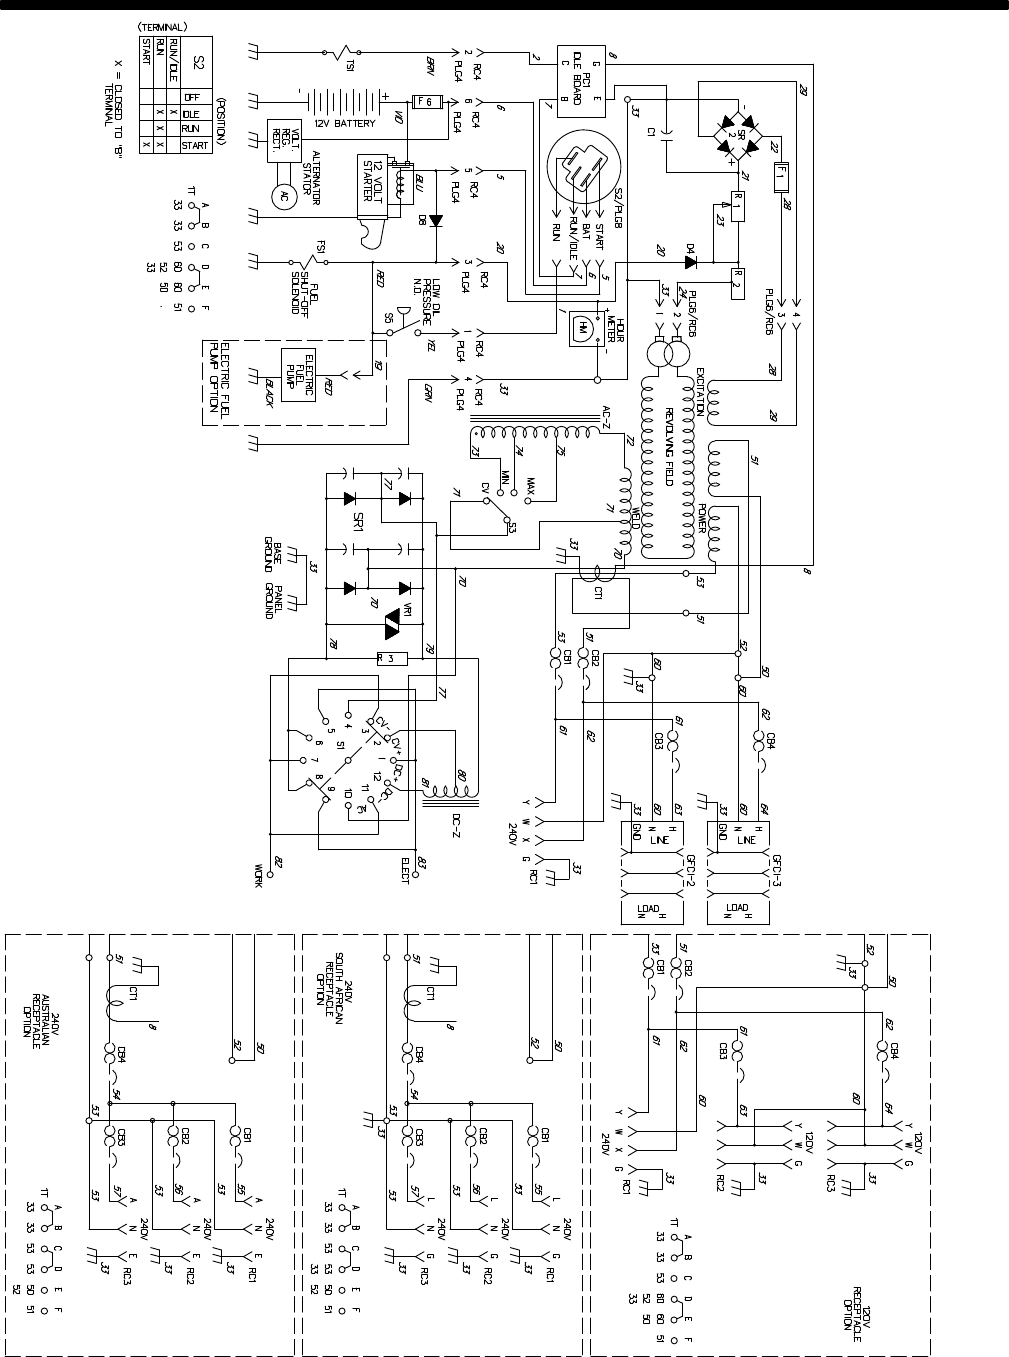 Diagram Lincoln Electric Welder Wiring Diagram Free Picture Full Version Hd Quality Free Picture Casediagrams Billysbones It